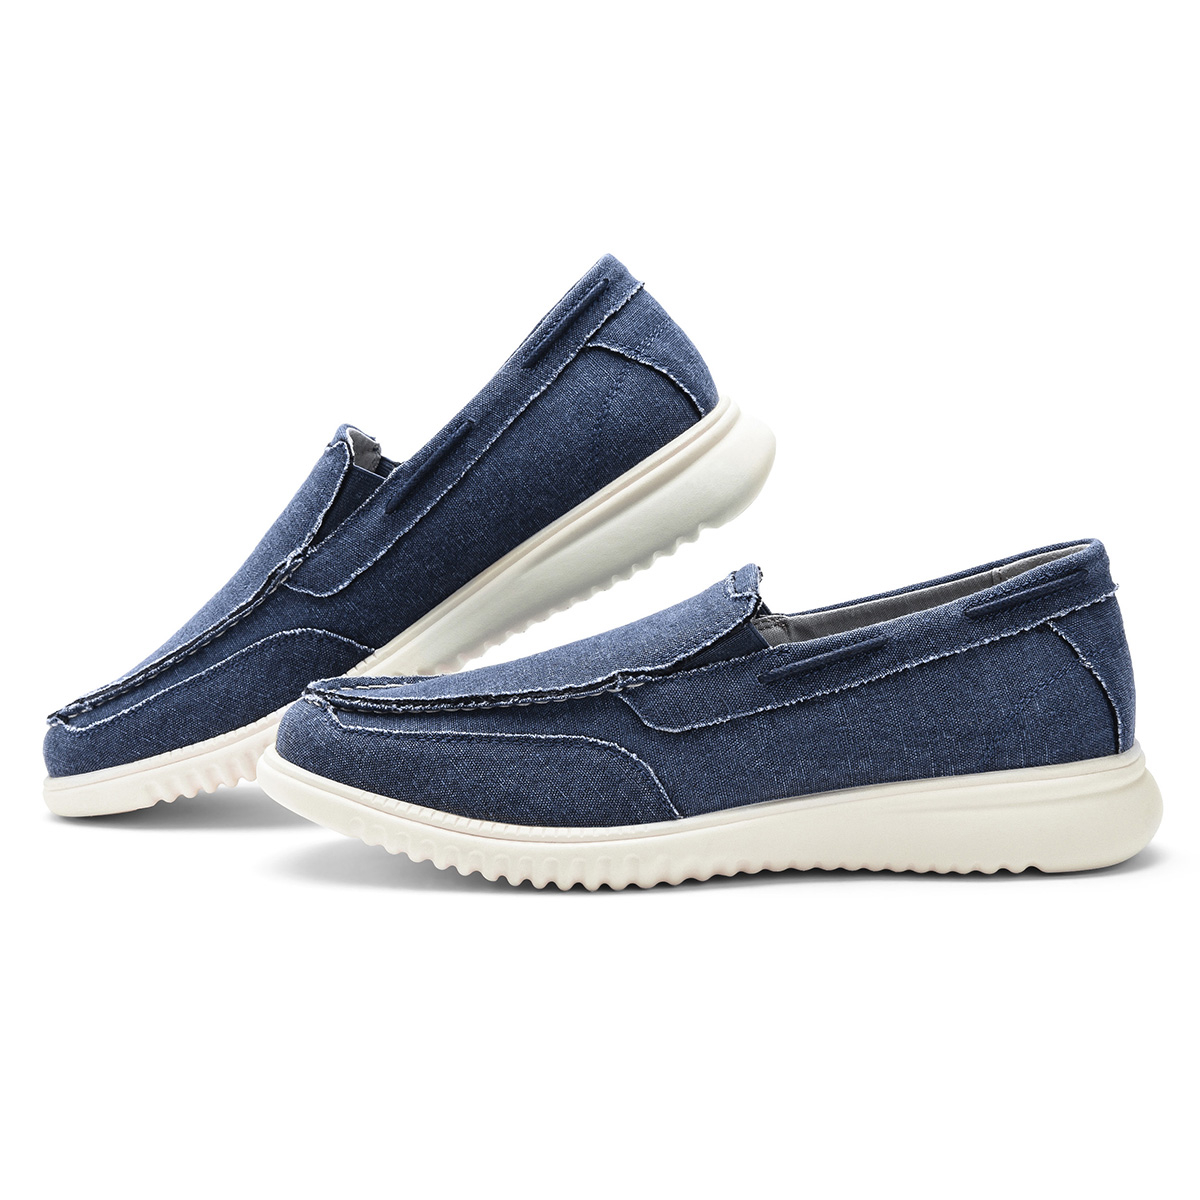 GM Golaiman G3416 Flat Shoes Men Comfortable High Quality Materials Fashion - Blue US 11